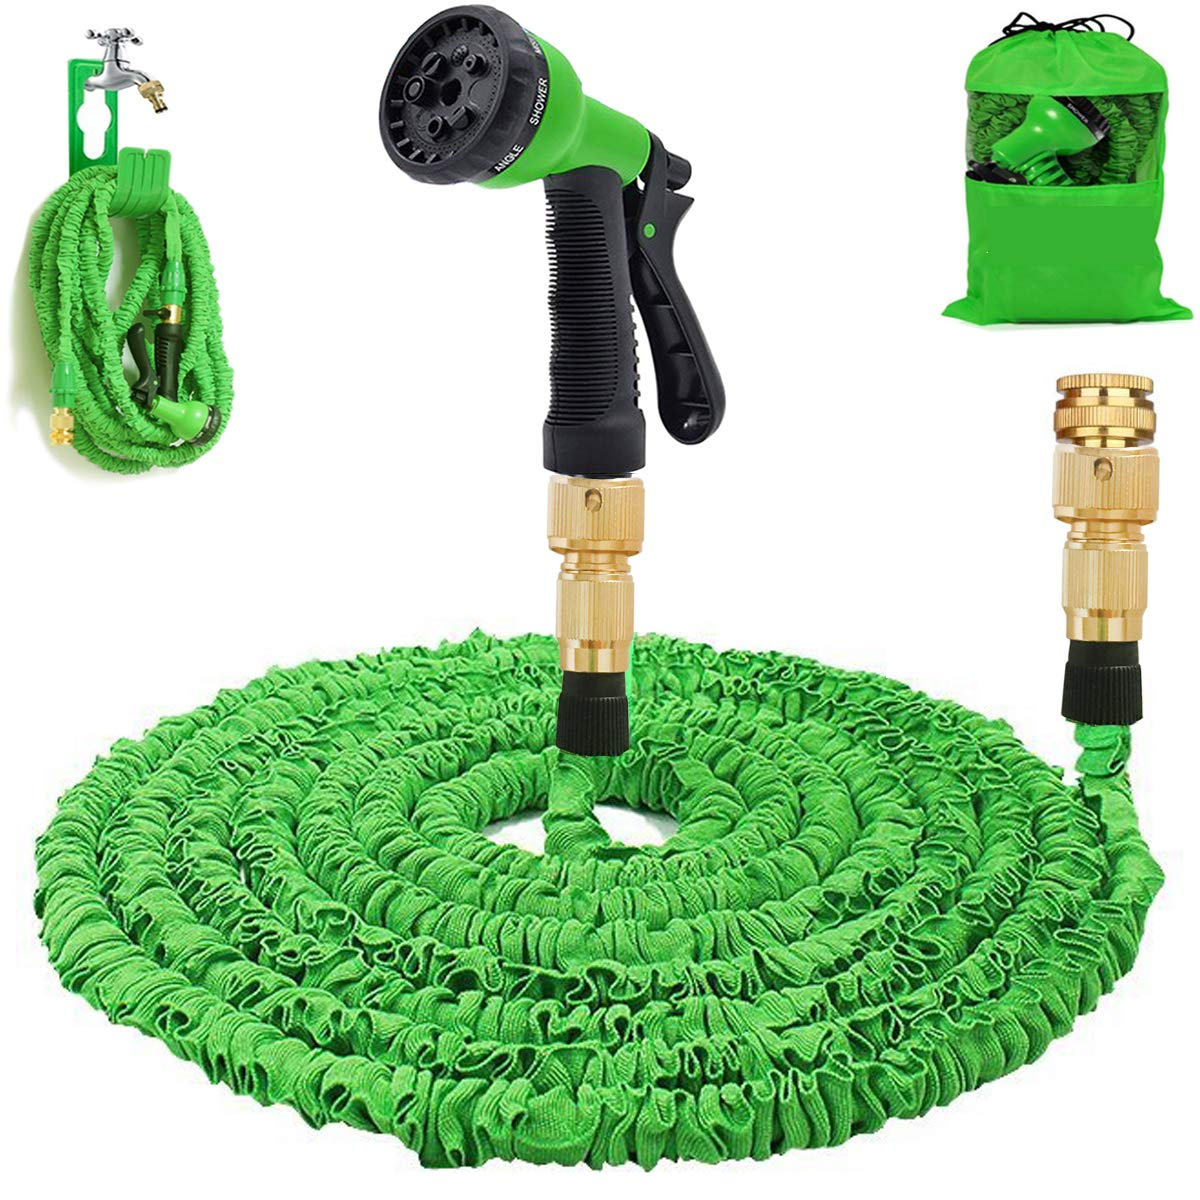 Gartenschlauch 50Ft erweiterbar Wasserschlauch Rohr - 3-mal erweitern flexiblen Schlauch 8-Pattern-Spritzpistole Anti-Leckage Schlauch Messing Schlaucharmaturen product image